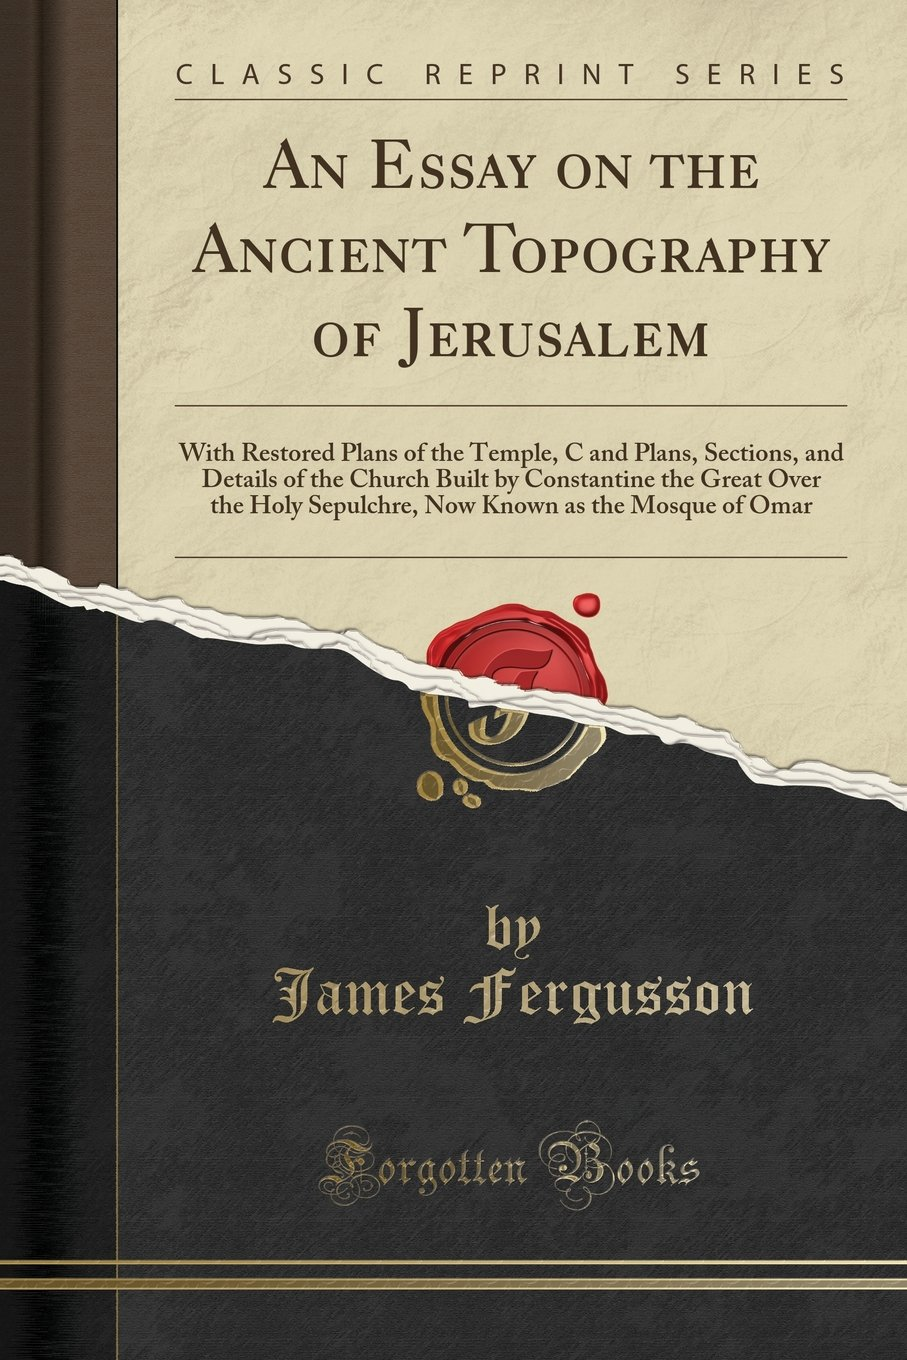 An Essay On The Ancient Topography Of Jerusalem With Restored Plans  An Essay On The Ancient Topography Of Jerusalem With Restored Plans Of The  Temple C And Plans Sections And Details Of The Church Built By